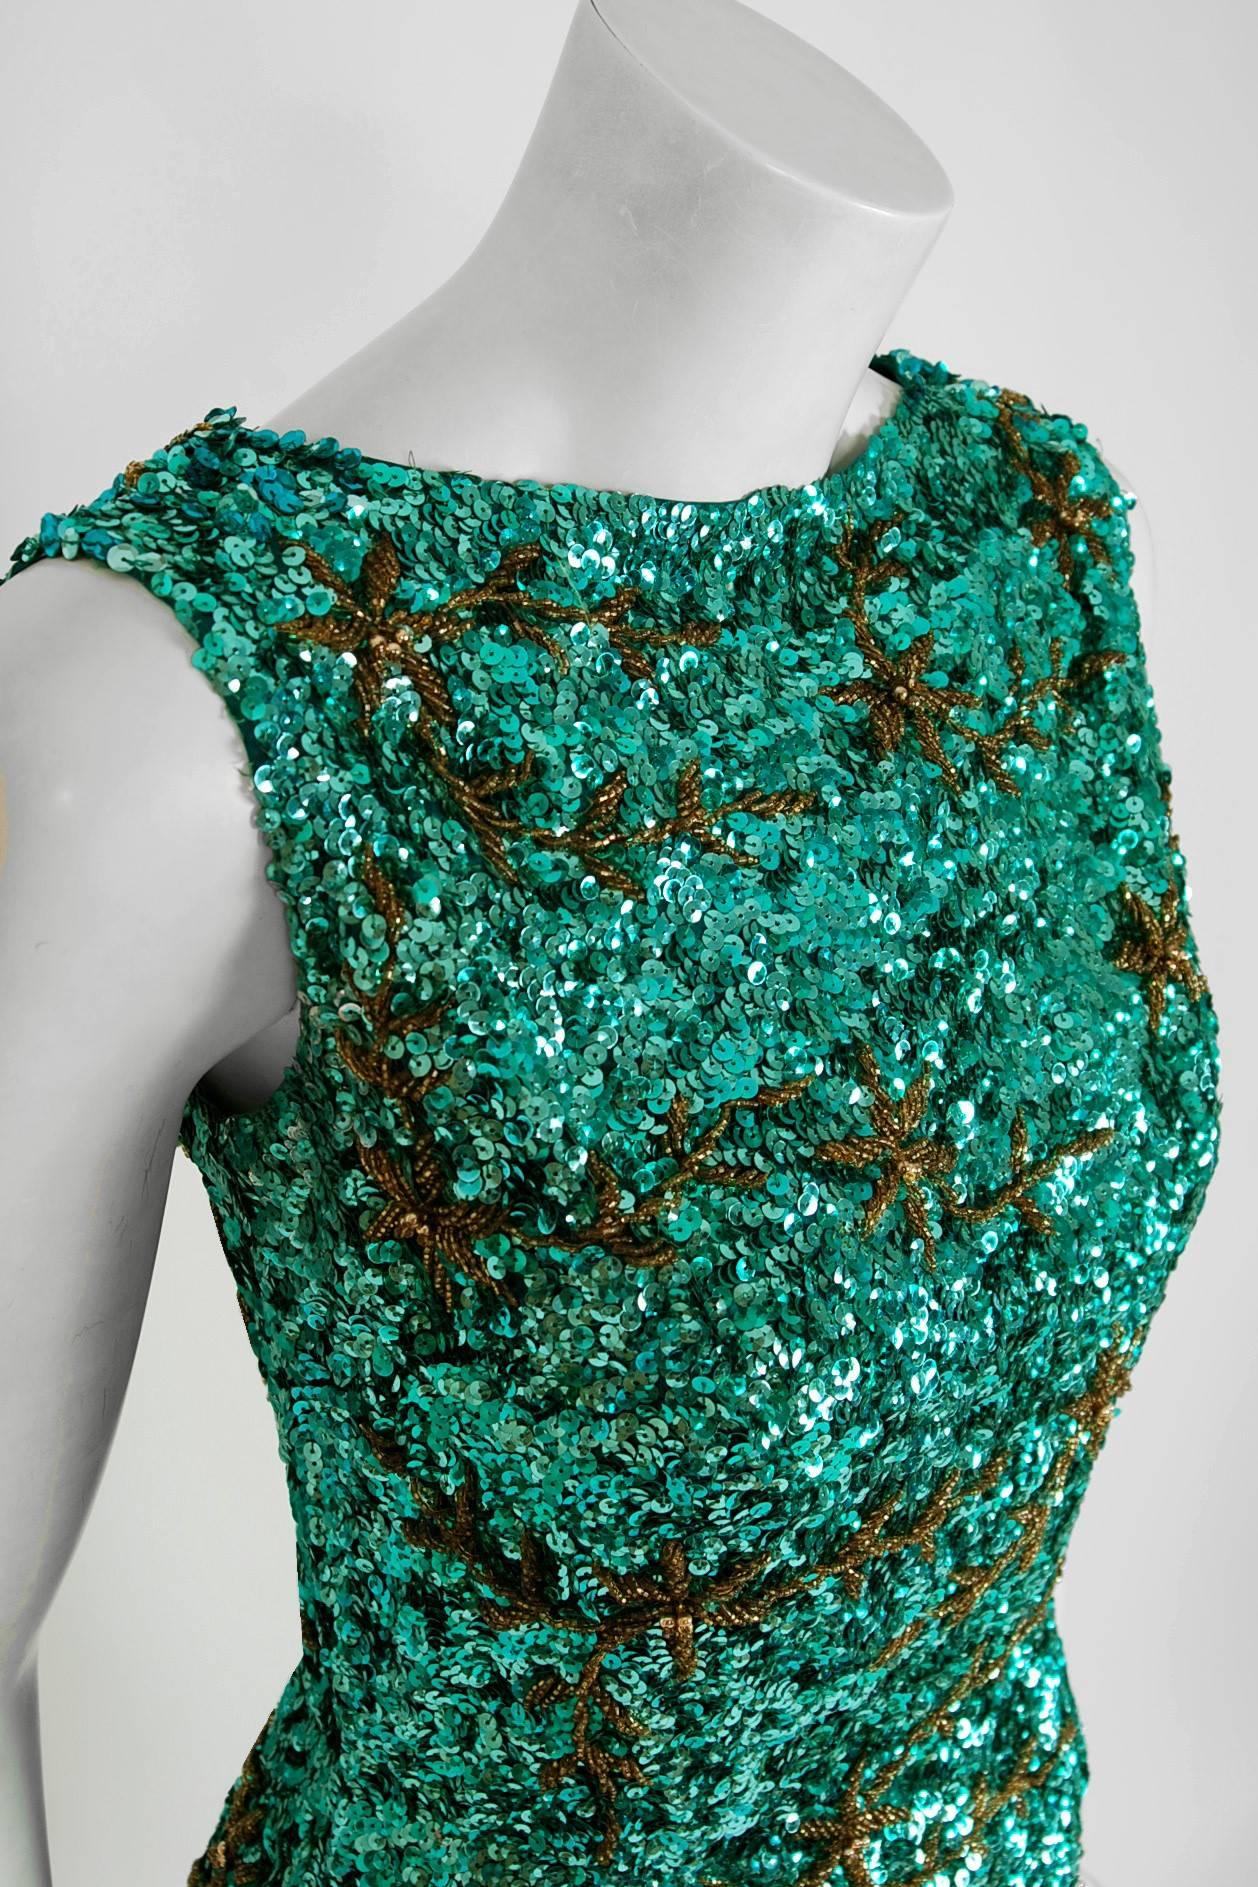 09b9e30392 1960 s Emerald-Green Sequin Beaded Novelty Satin Hourglass Cocktail Party  Dress at 1stdibs